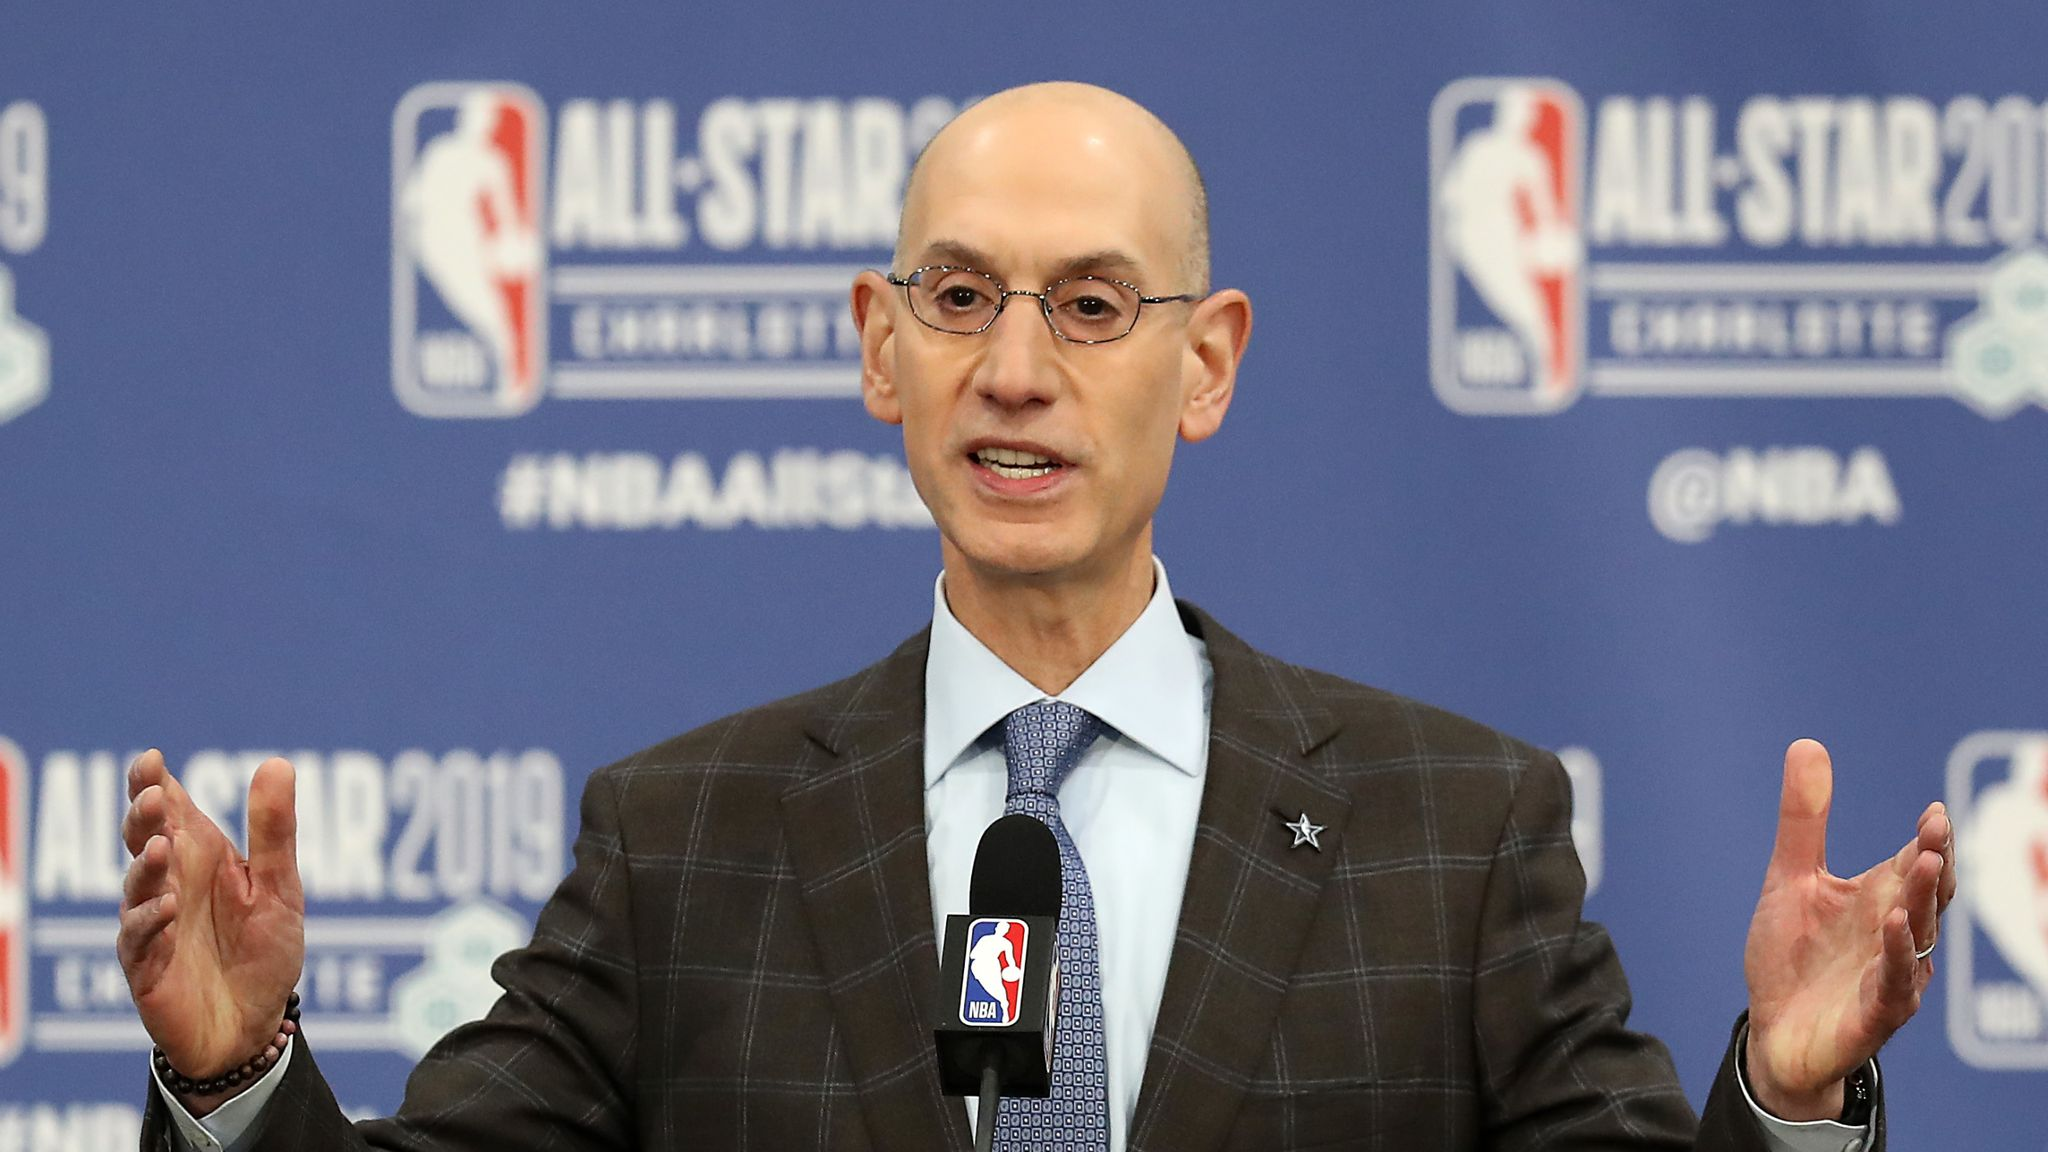 NBA Partners With LegalZoom to Support Small Business Owners